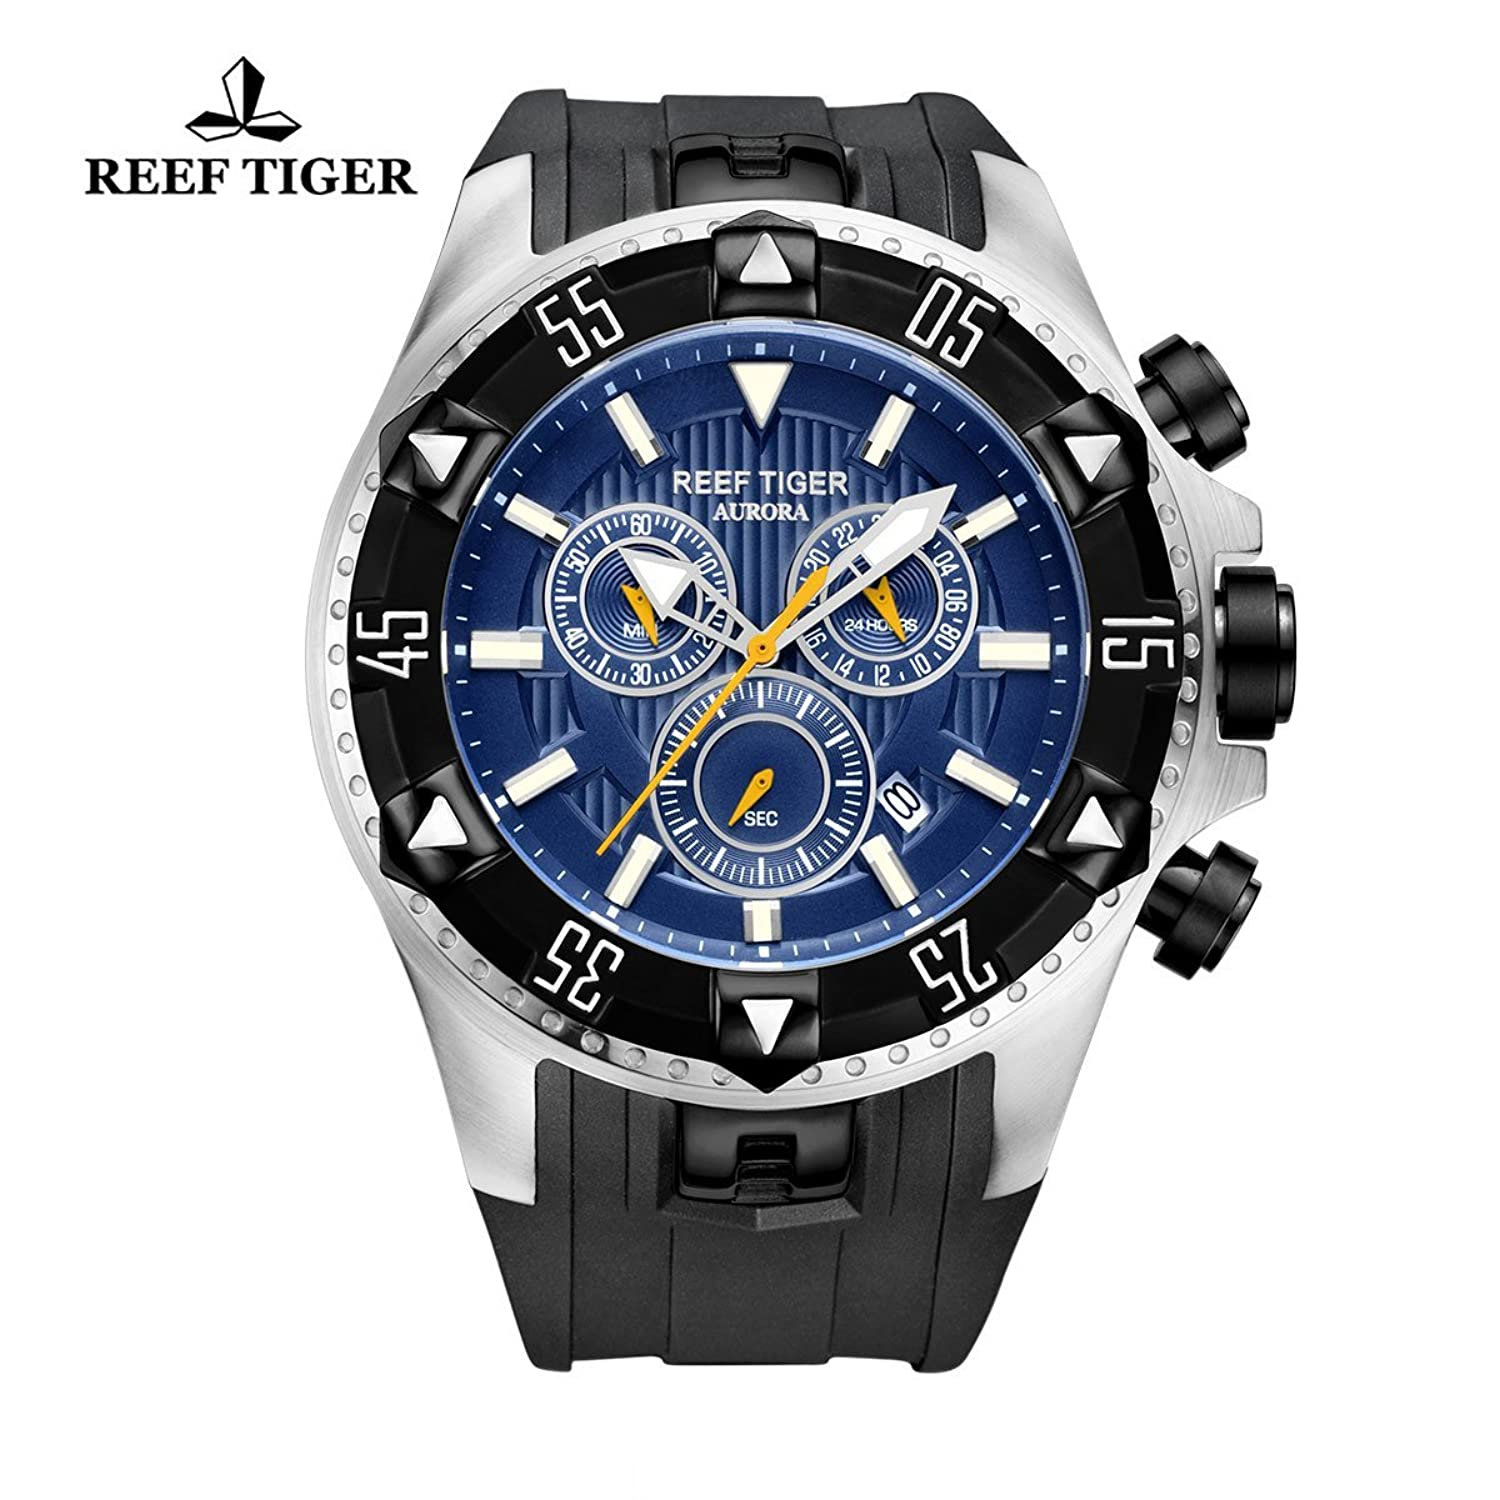 Reef Tiger Herren Sport Uhr mit Chronograph Datum Big Zifferblatt Super Luminous Quarz Uhren rga303